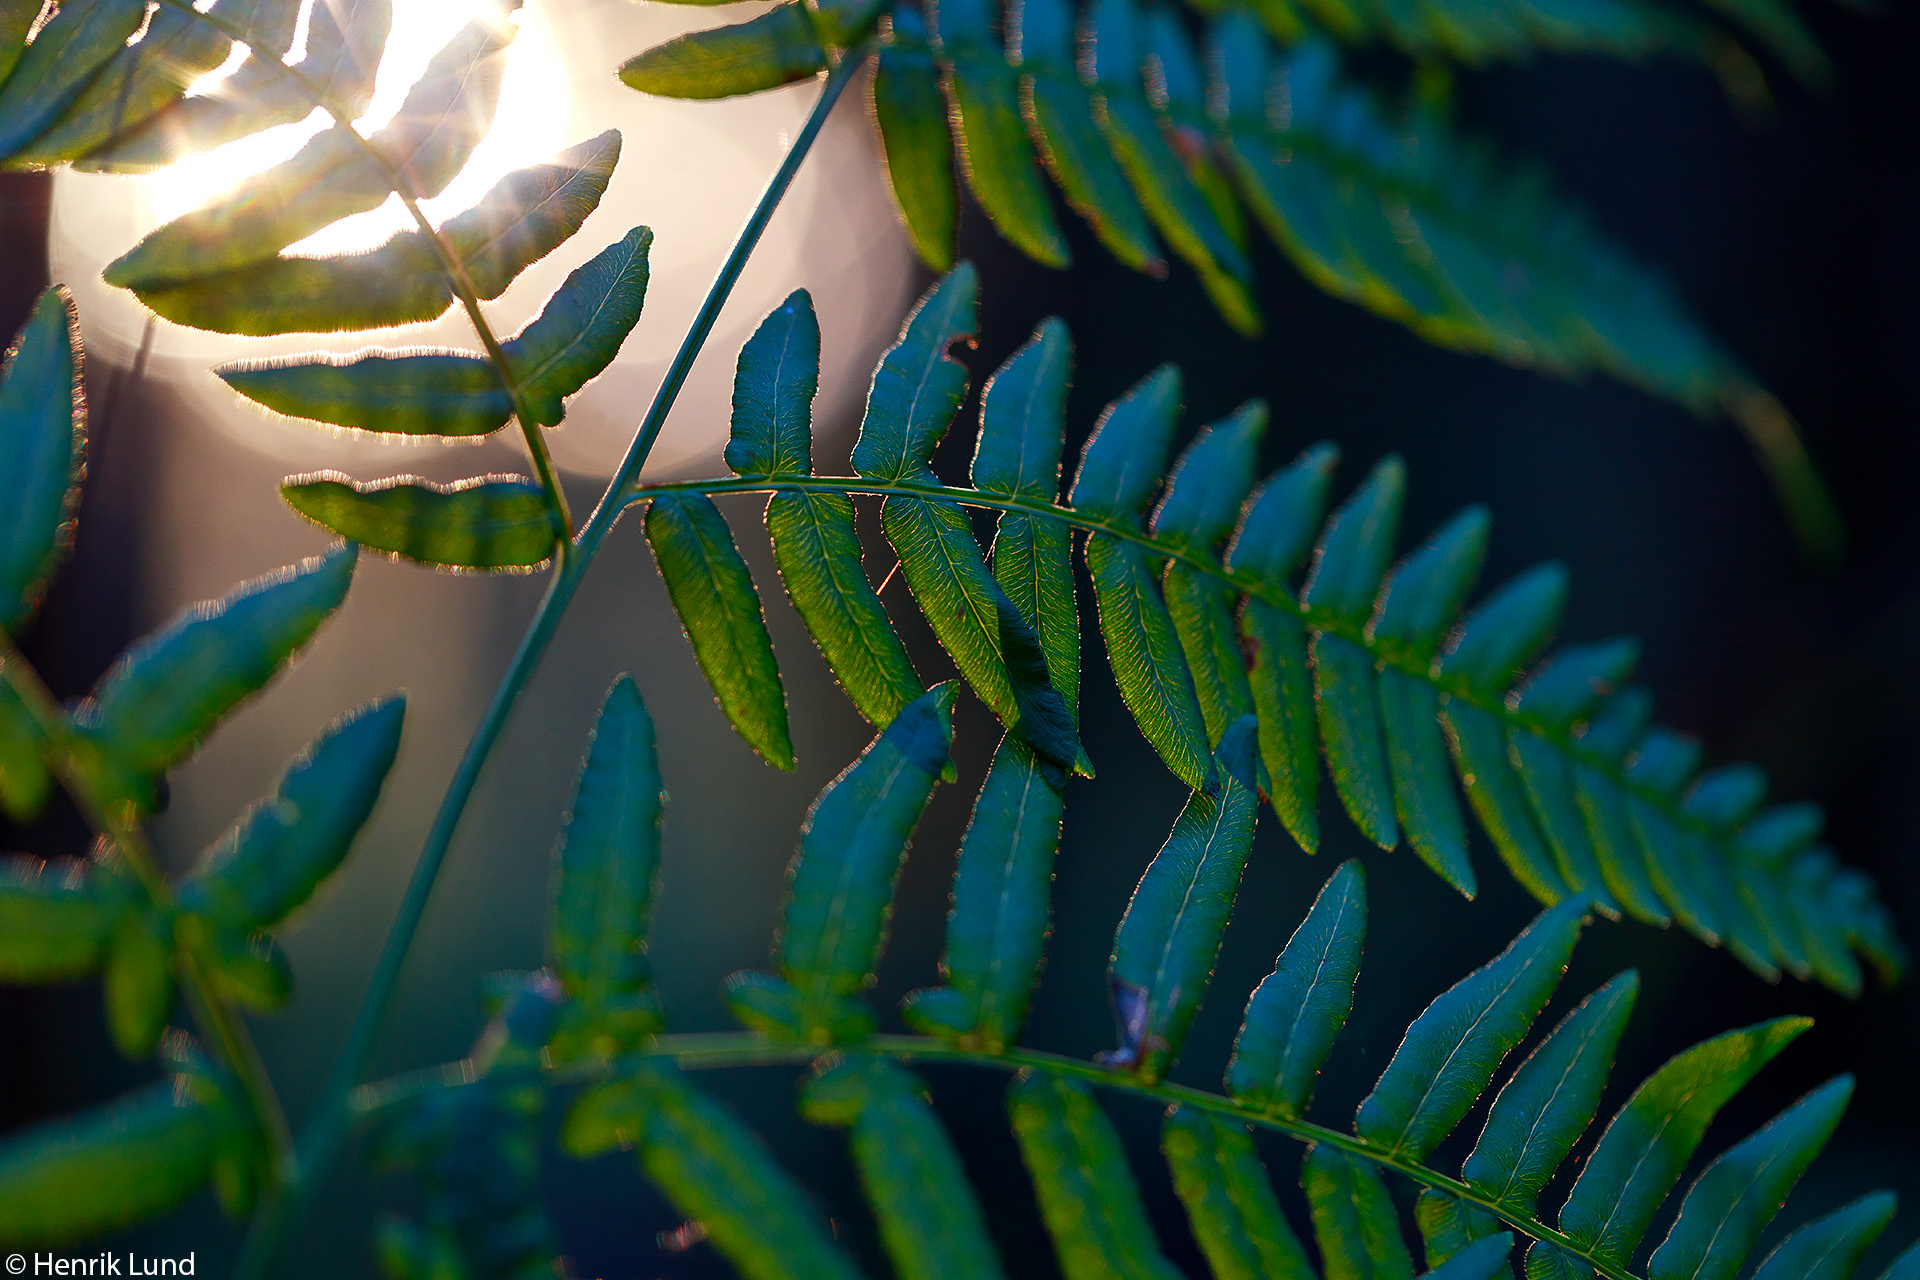 Fern in autumn evening light. Lappträsk, Finland. September 2017.